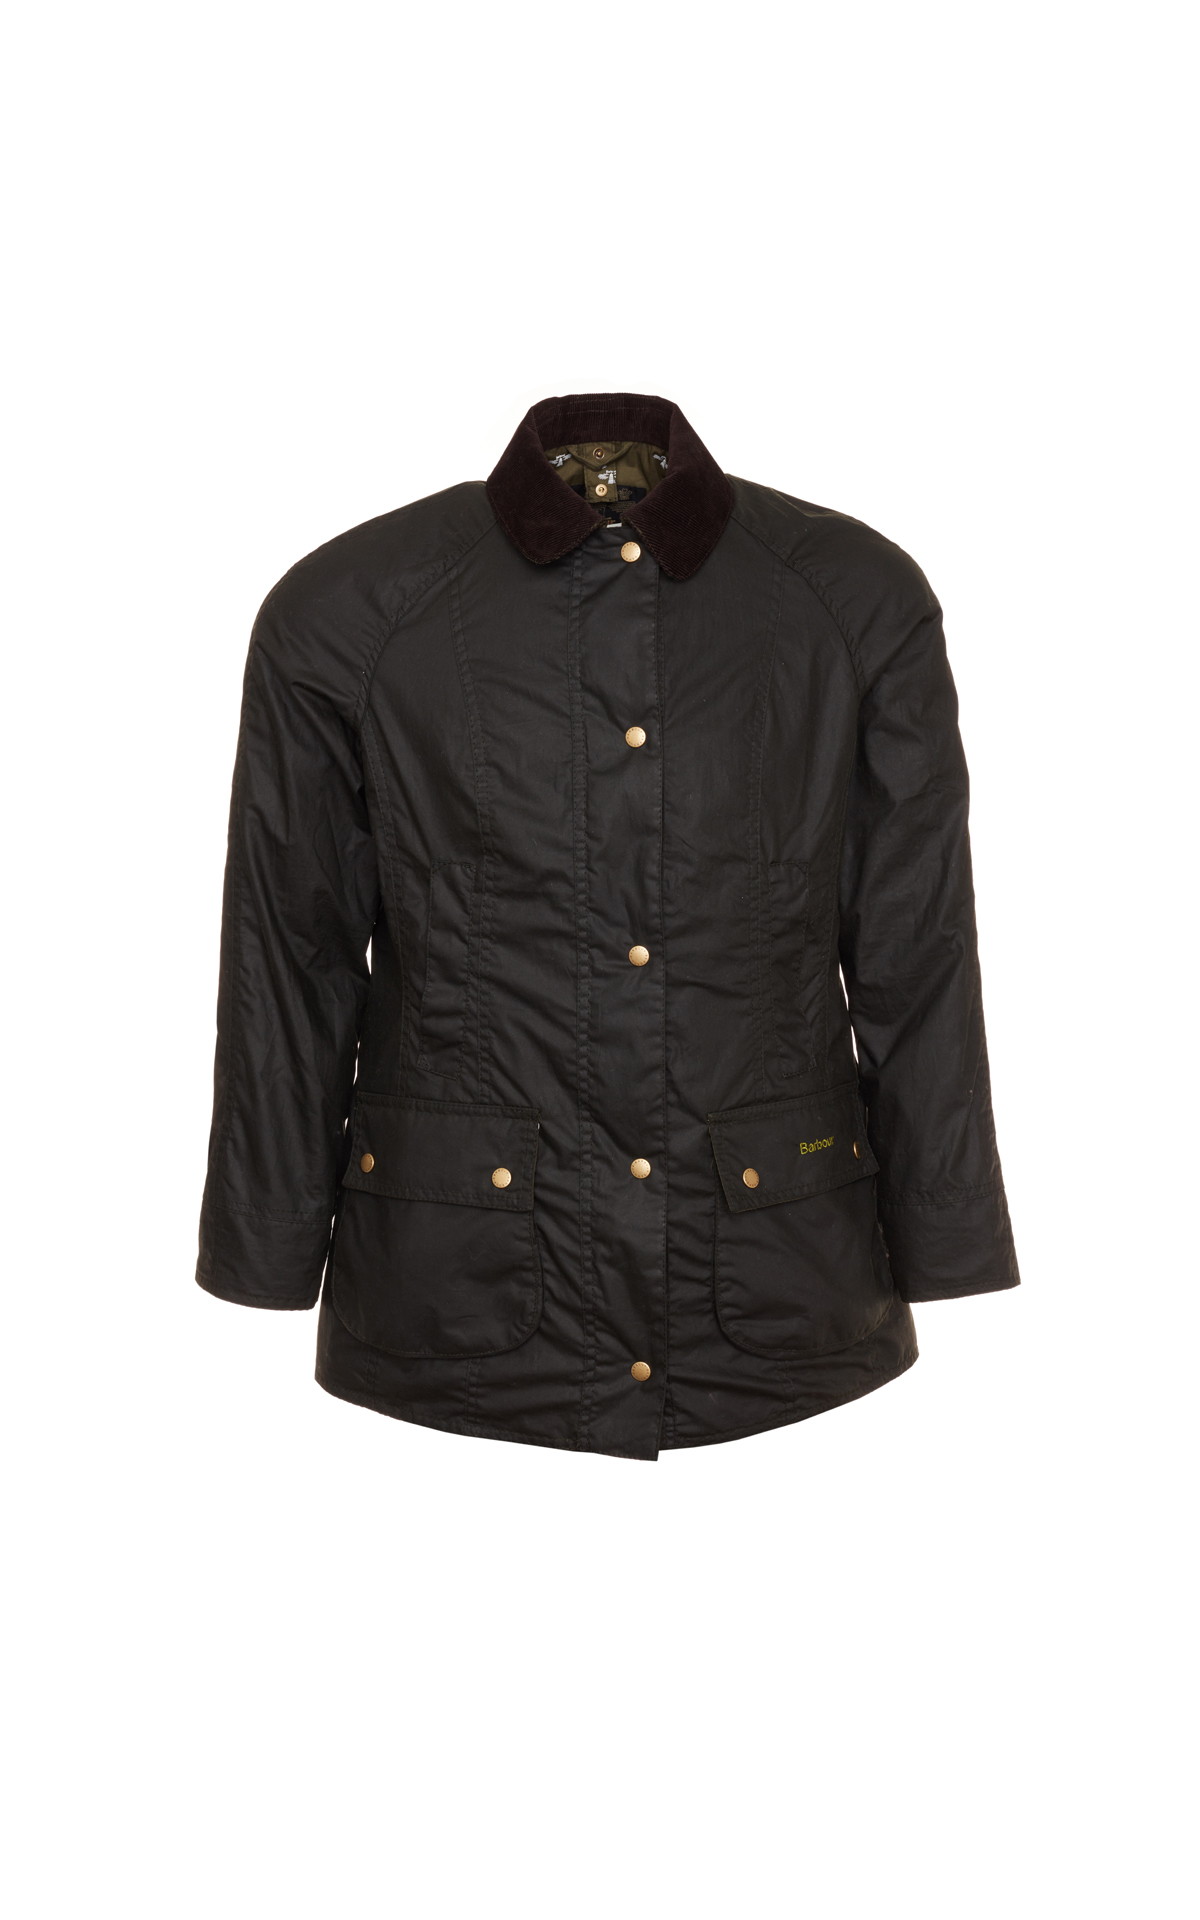 Barbour  Beadnell wax jacket from Bicester Village